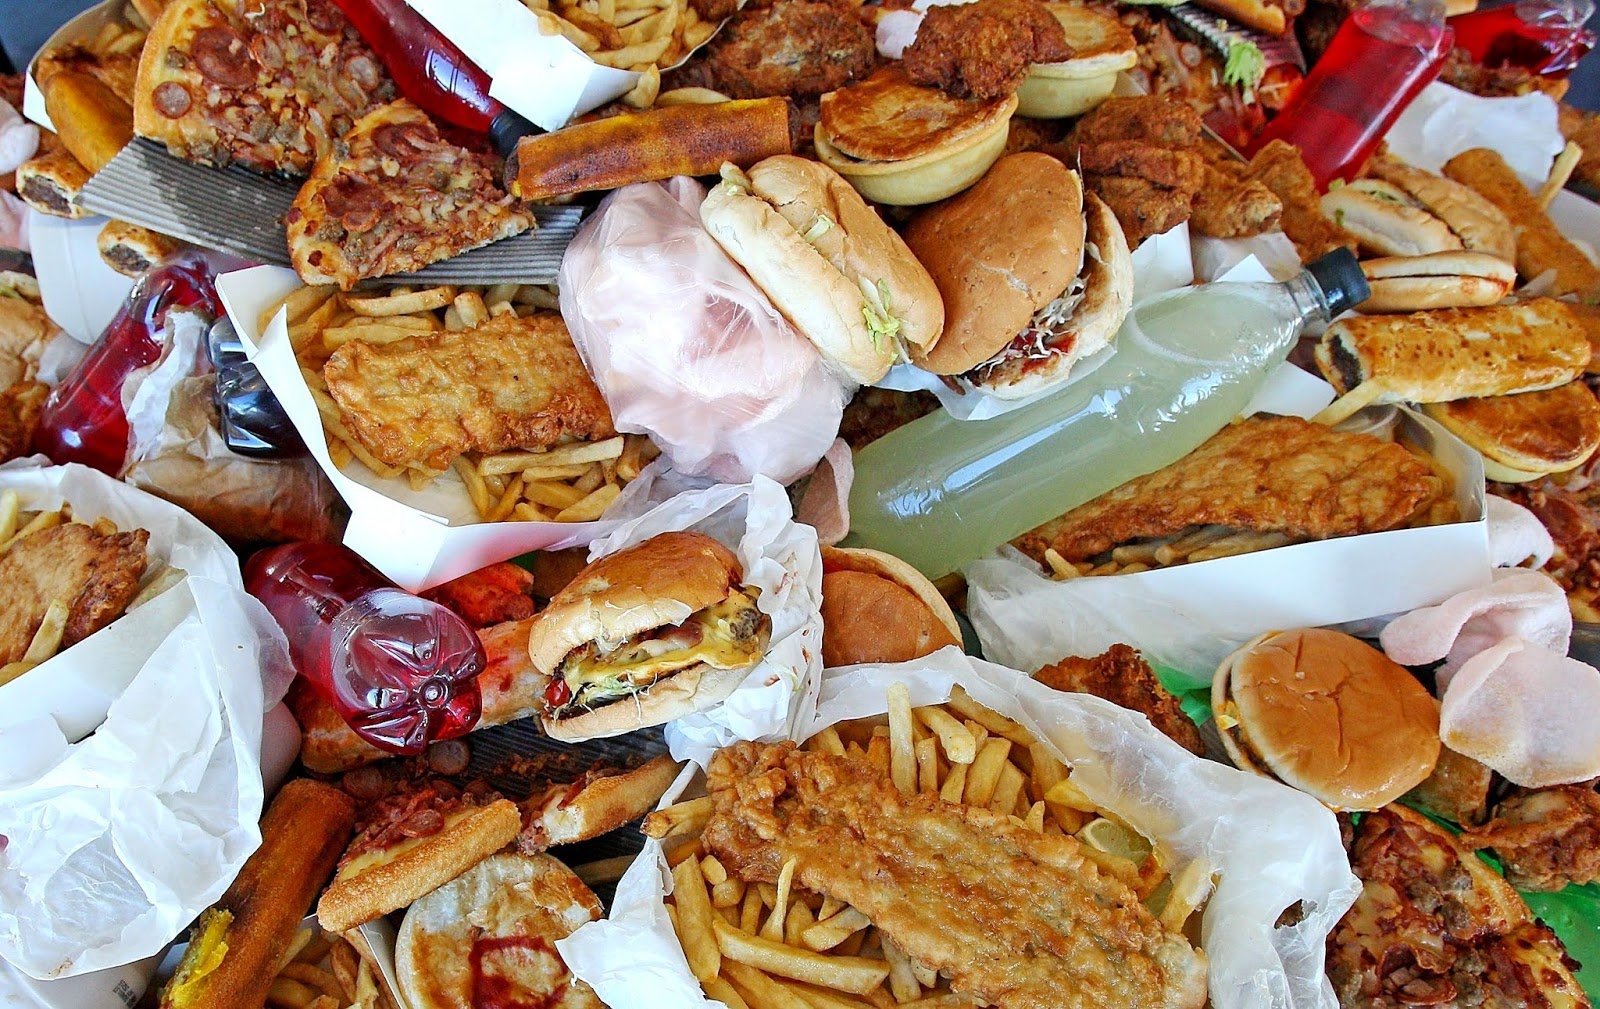 Stop Eating So Much Chemicals